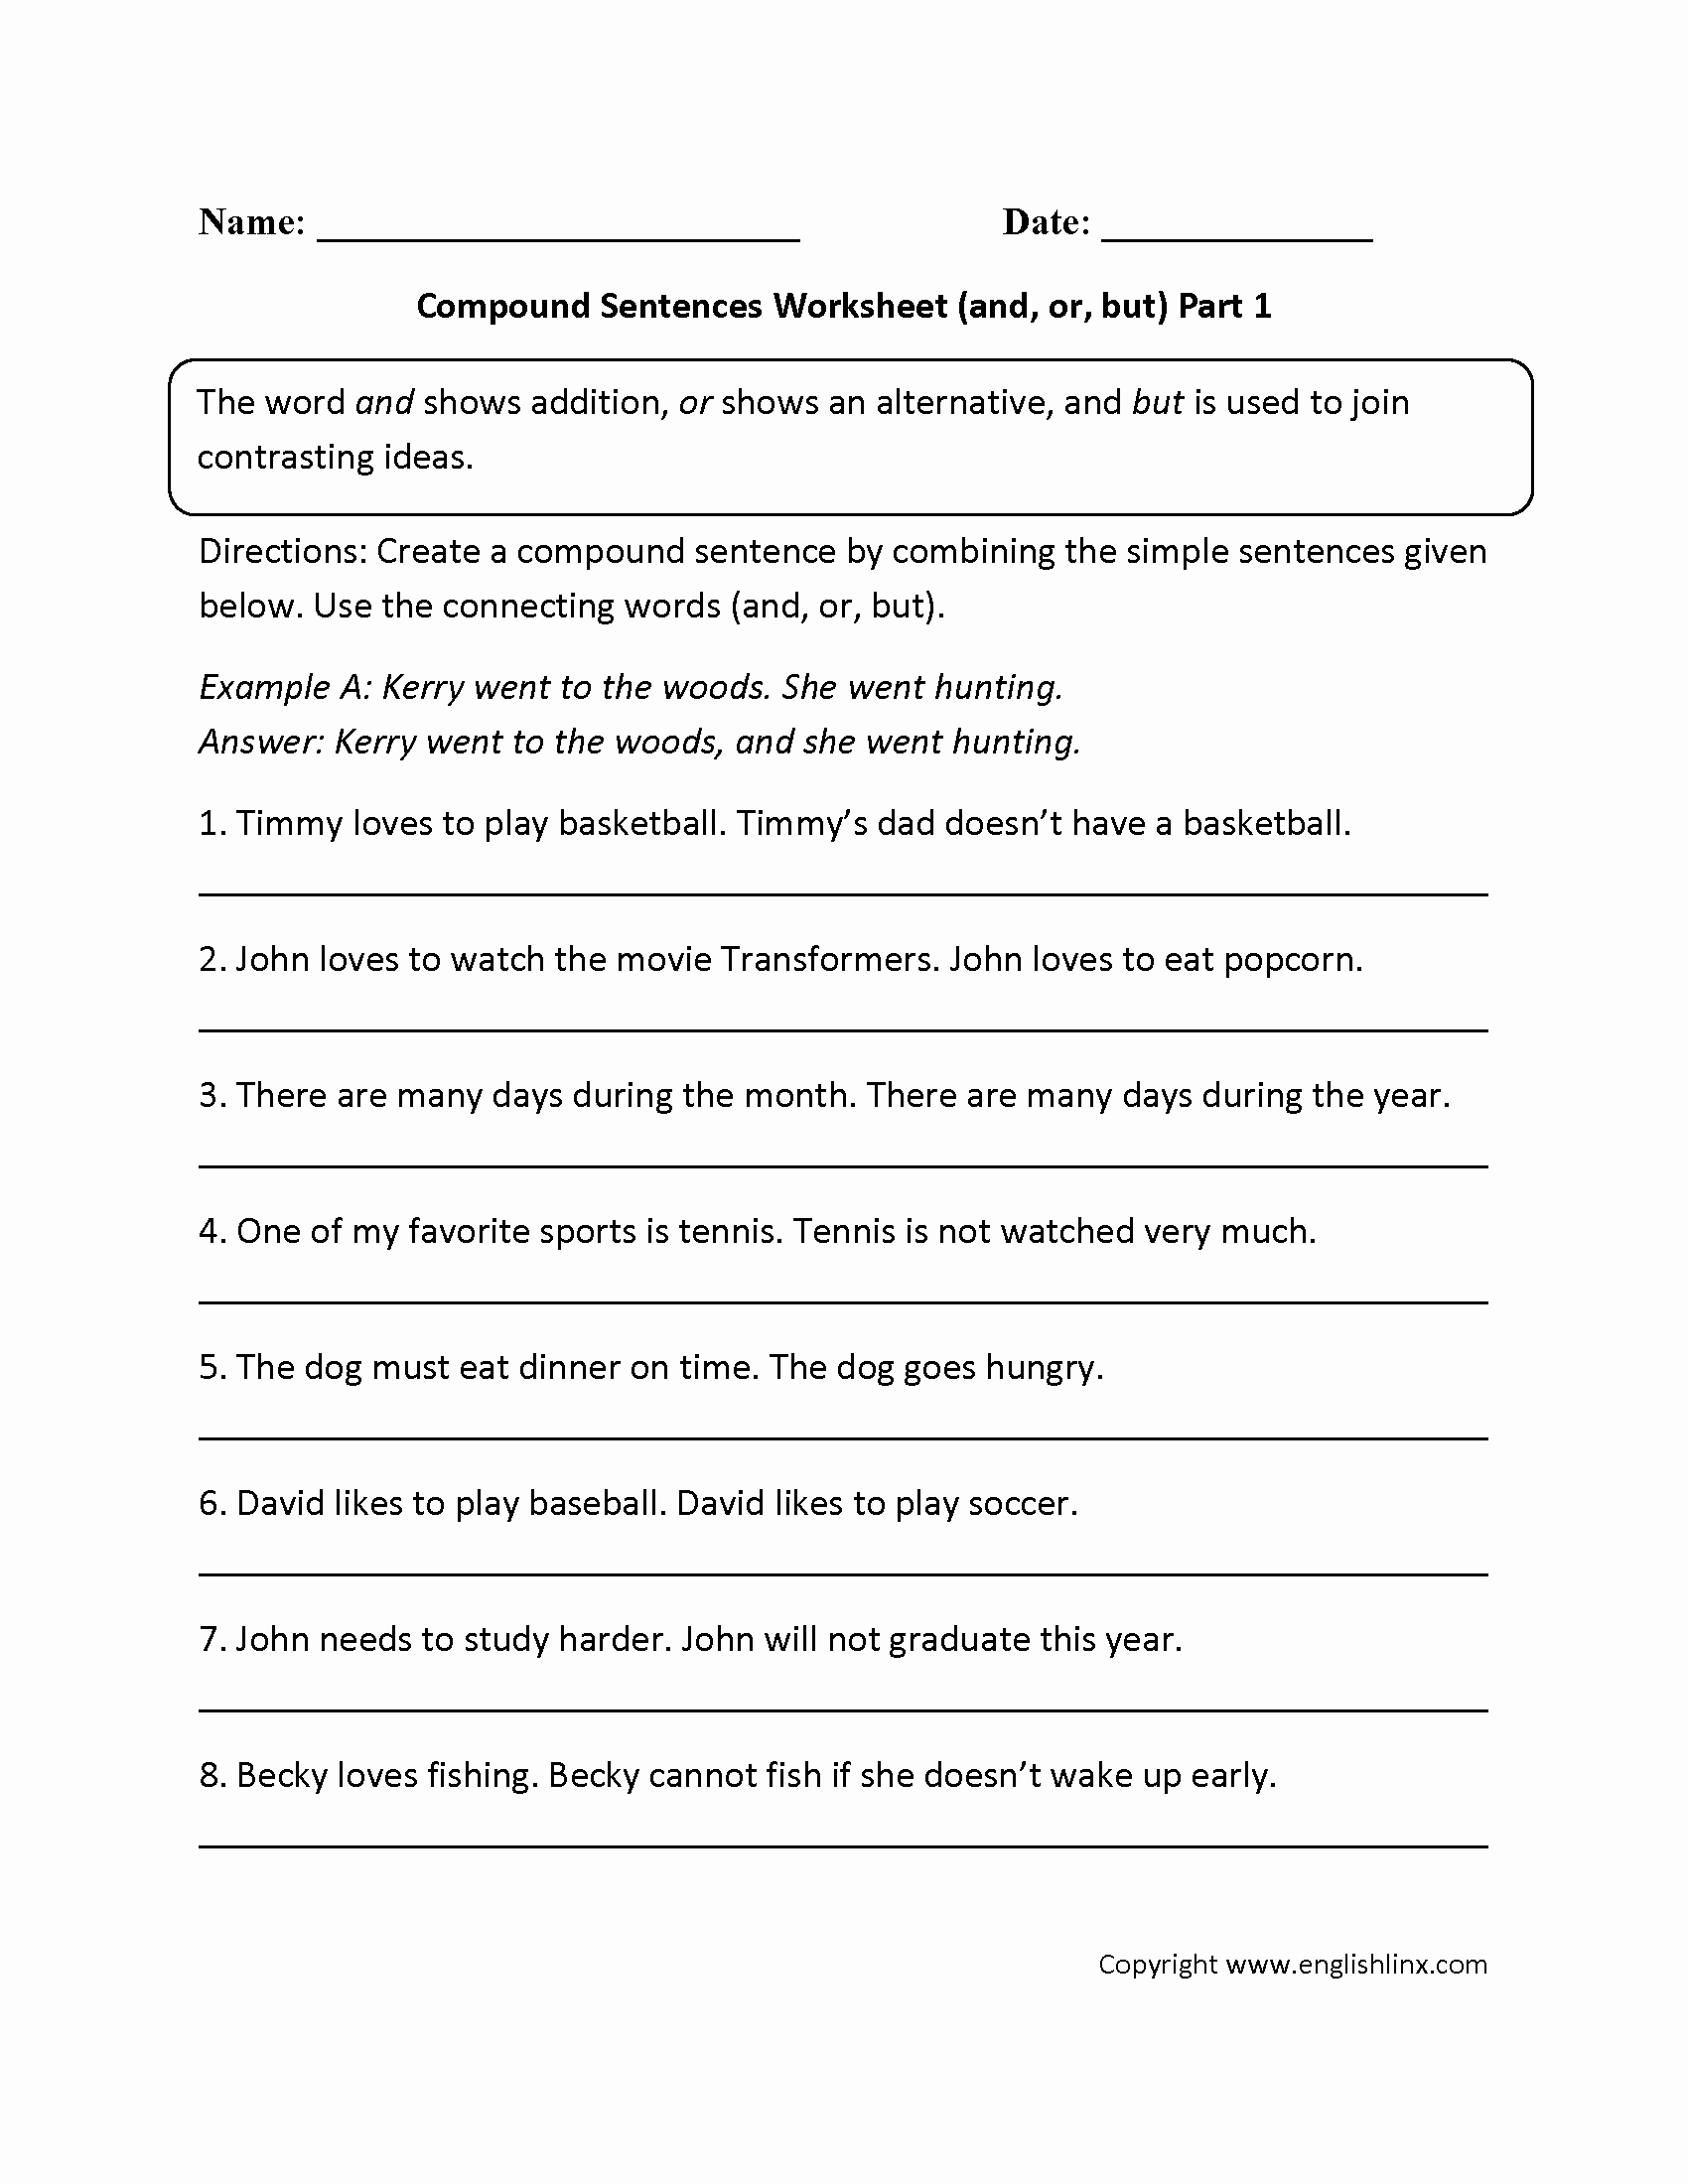 Compound Sentences Worksheet Pdf Awesome Sentences Worksheets